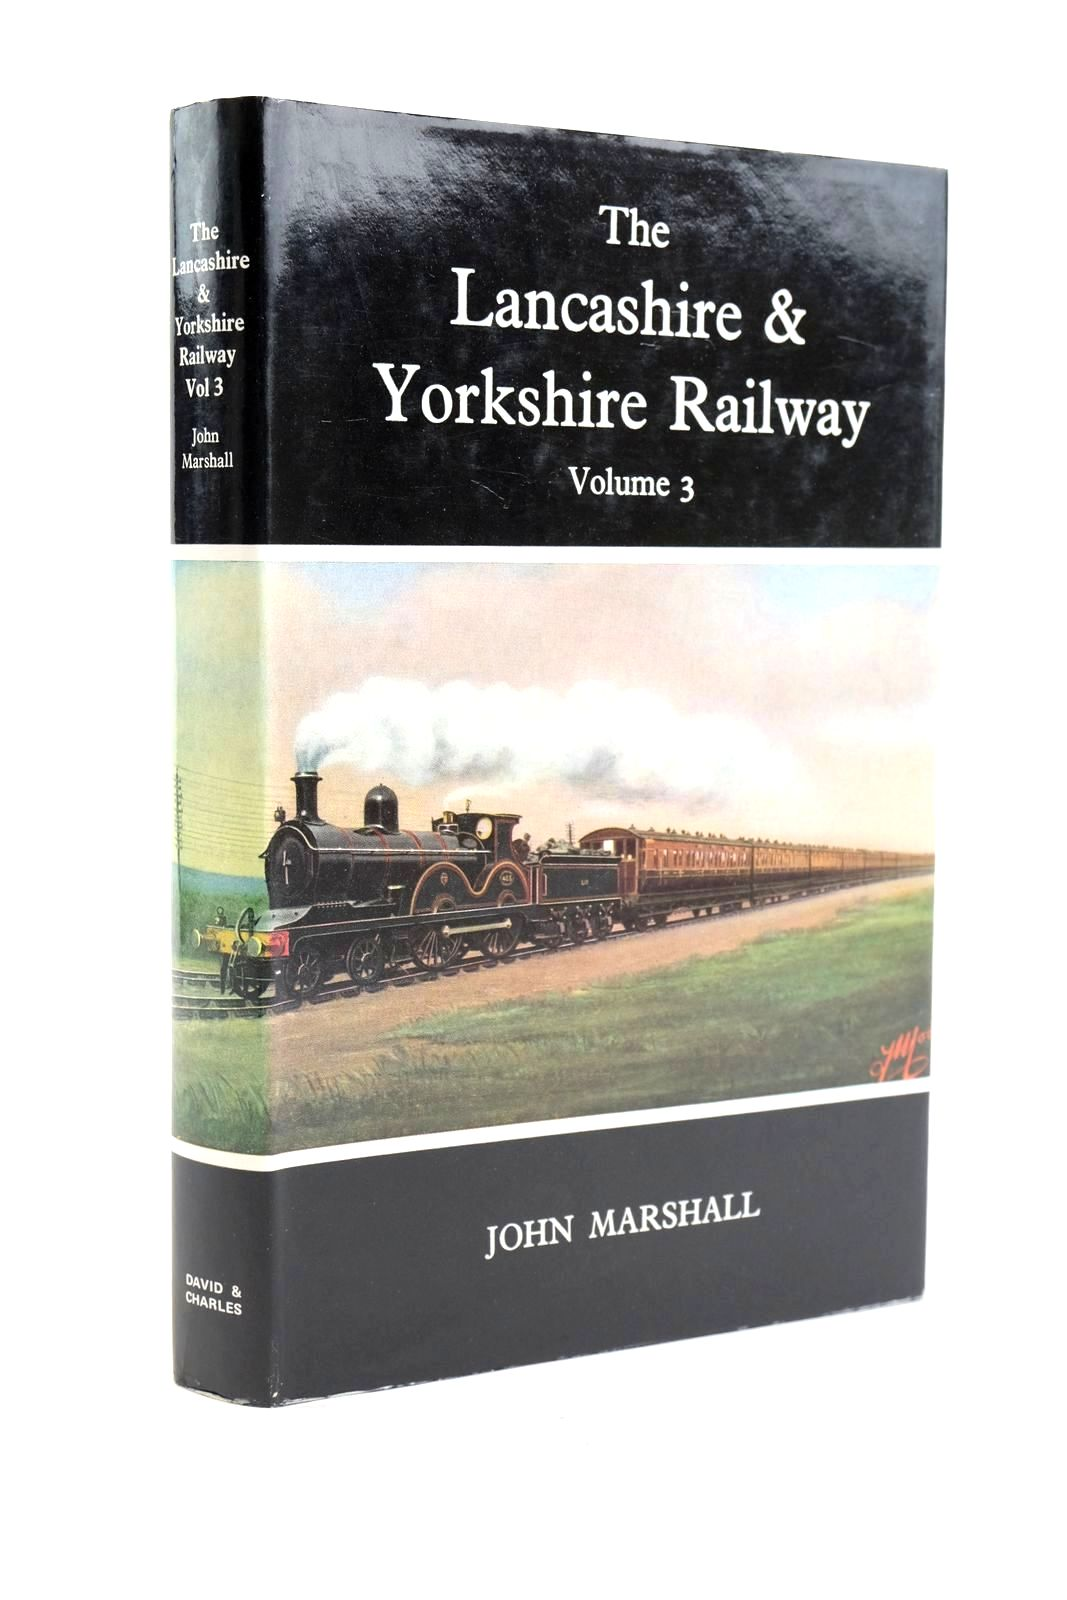 Photo of THE LANCASHIRE & YORKSHIRE RAILWAY VOLUME THREE written by Marshall, John published by David & Charles (STOCK CODE: 1319937)  for sale by Stella & Rose's Books